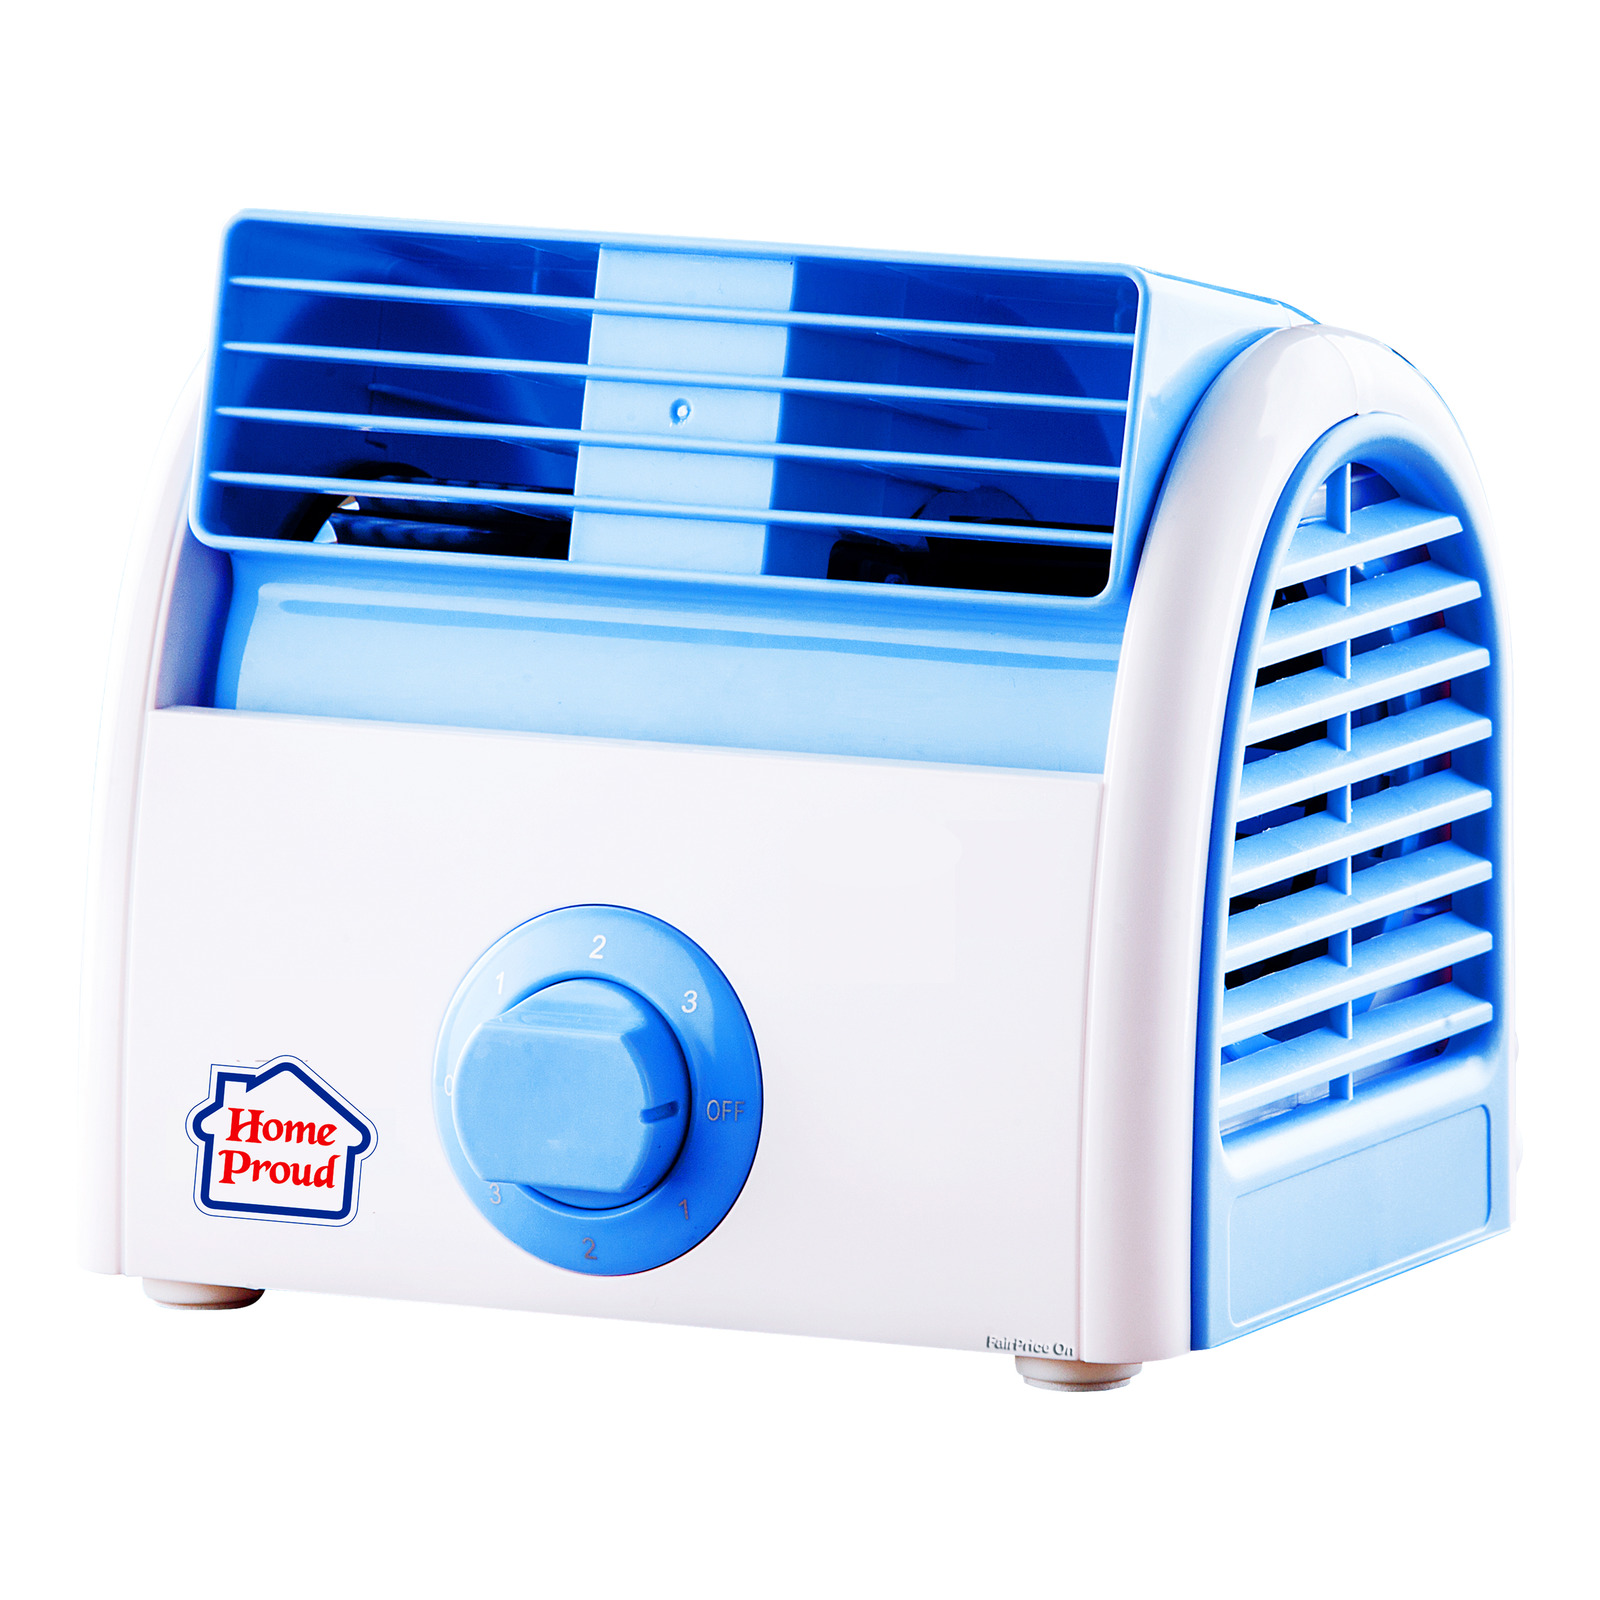 HomeProud Mini Turbo Fan - Blue (HP07)